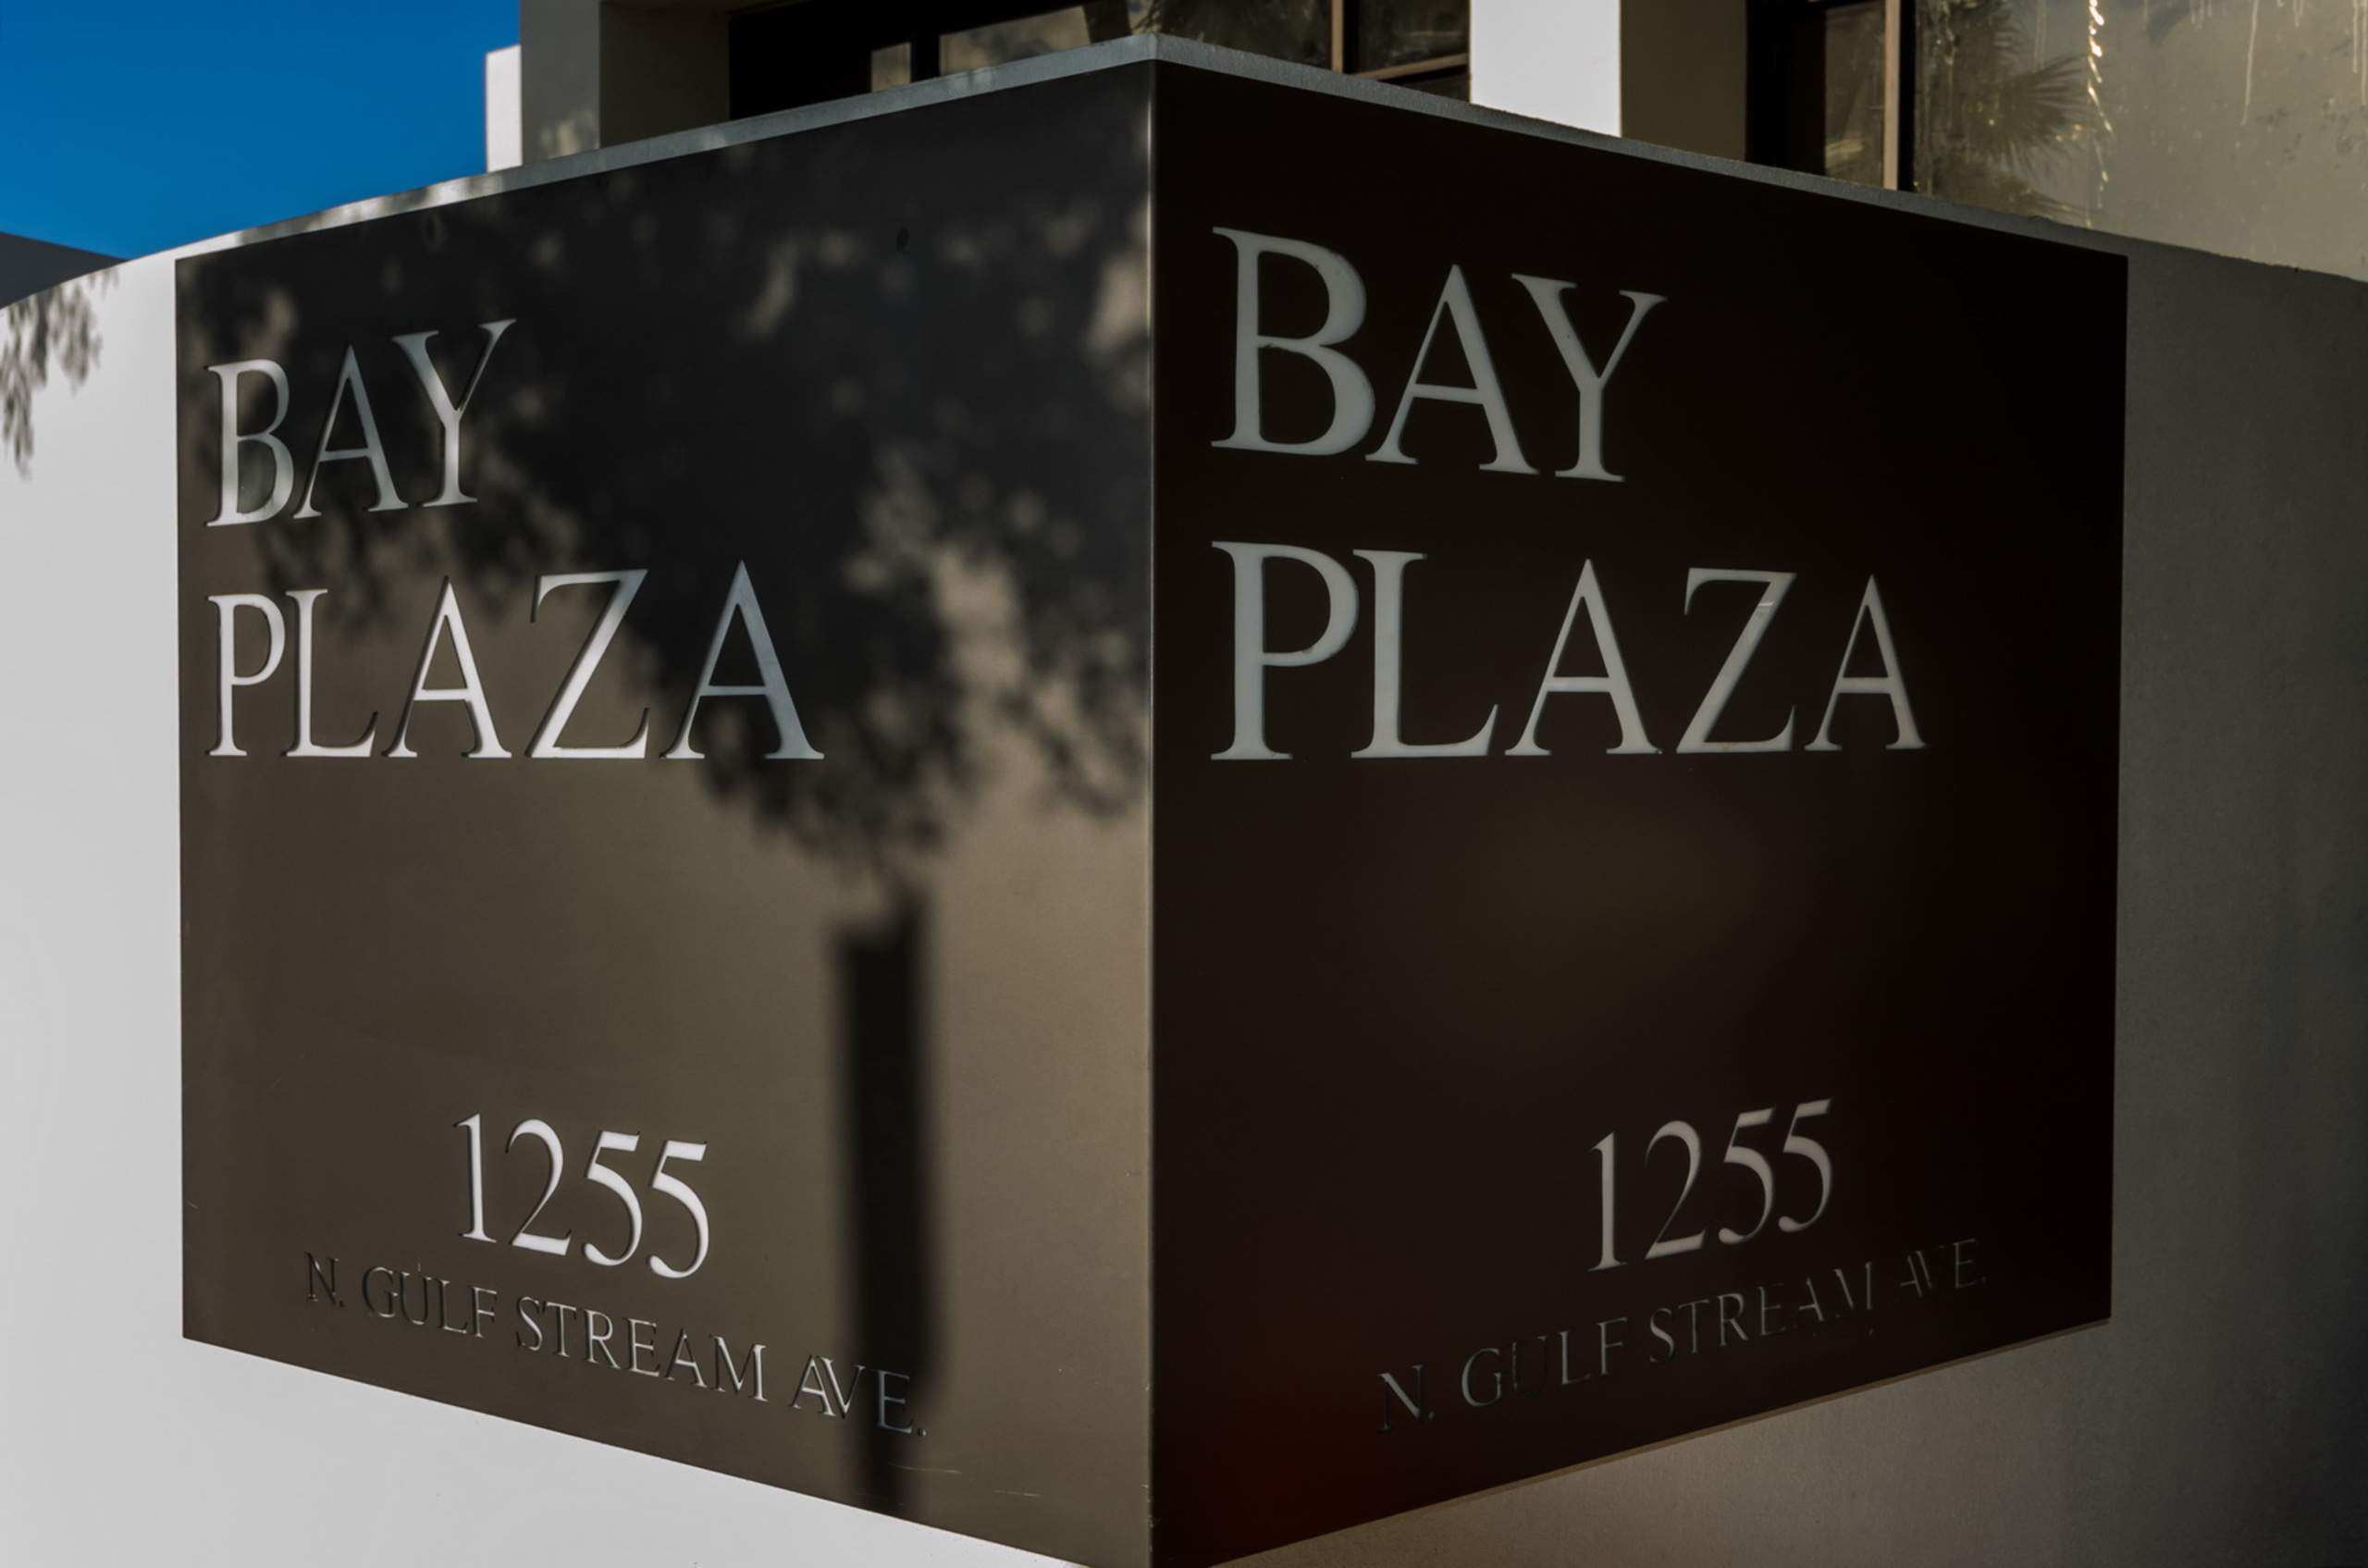 Bay Plaza Unit 903 for Sale in downtown Sarasota Florida